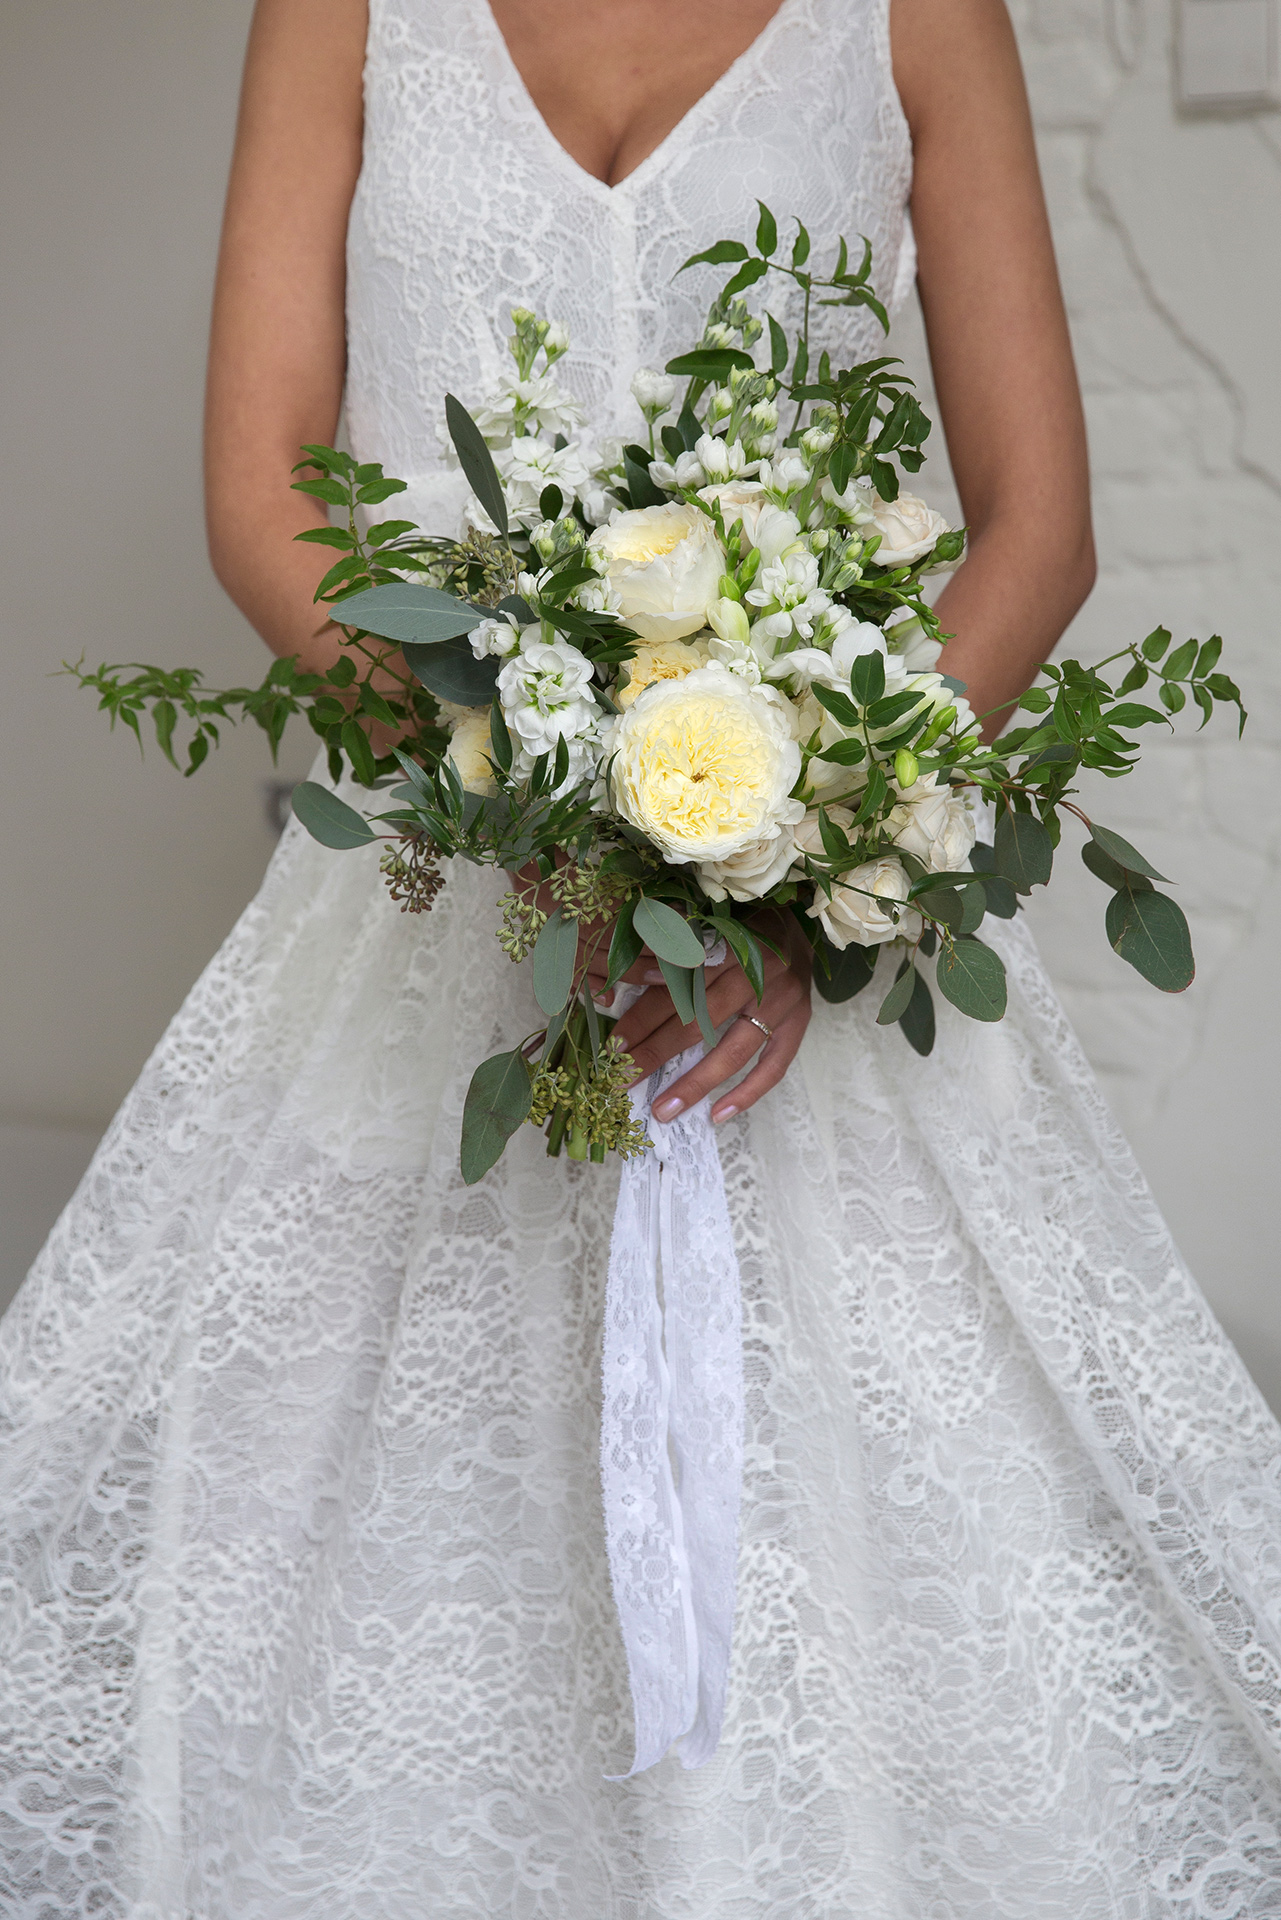 In this bouquet, the highly desirable wedding rose Patience is combined with Snow Ballet roses and lots of foliage for a natural, garden look.